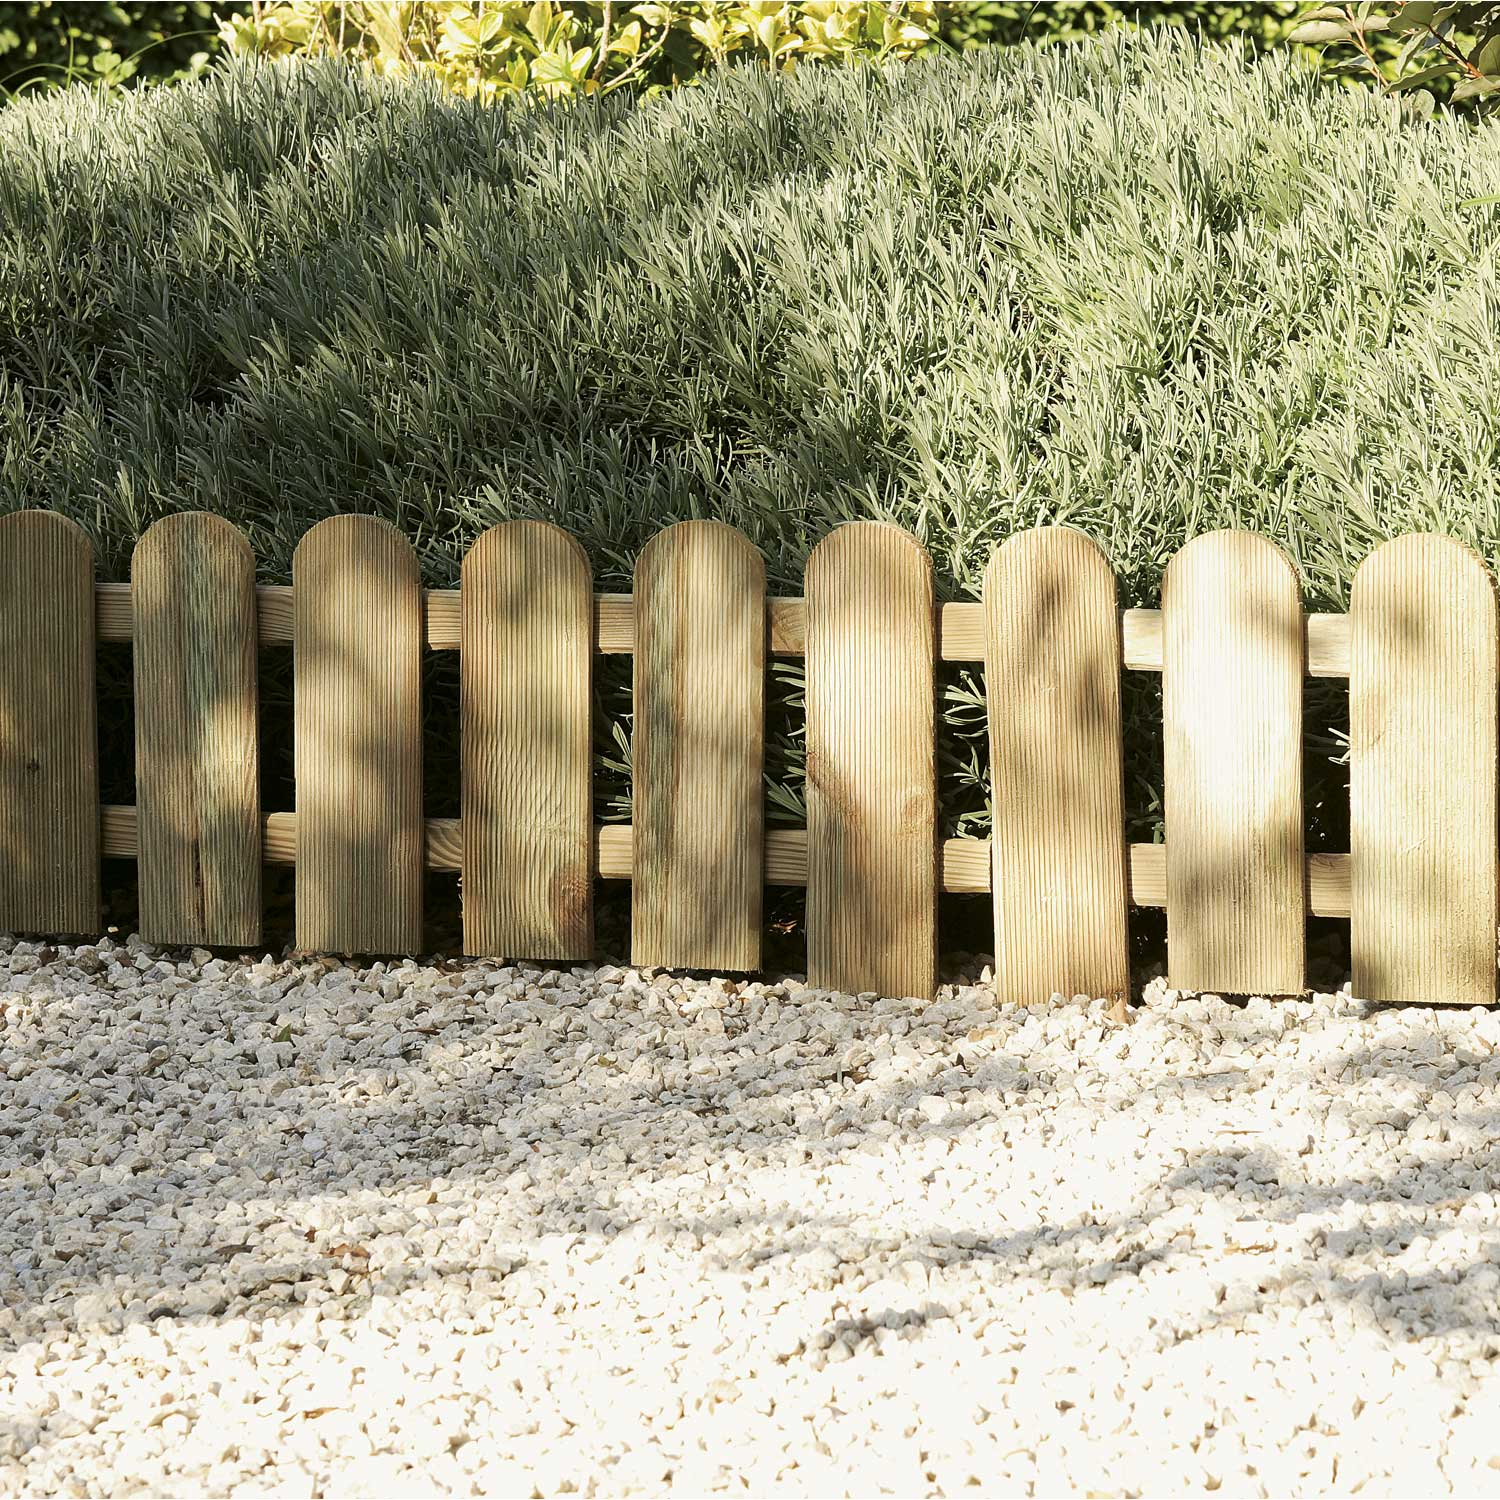 Beautiful Bordure De Jardin En Bois A Derouler Pictures - Design ...